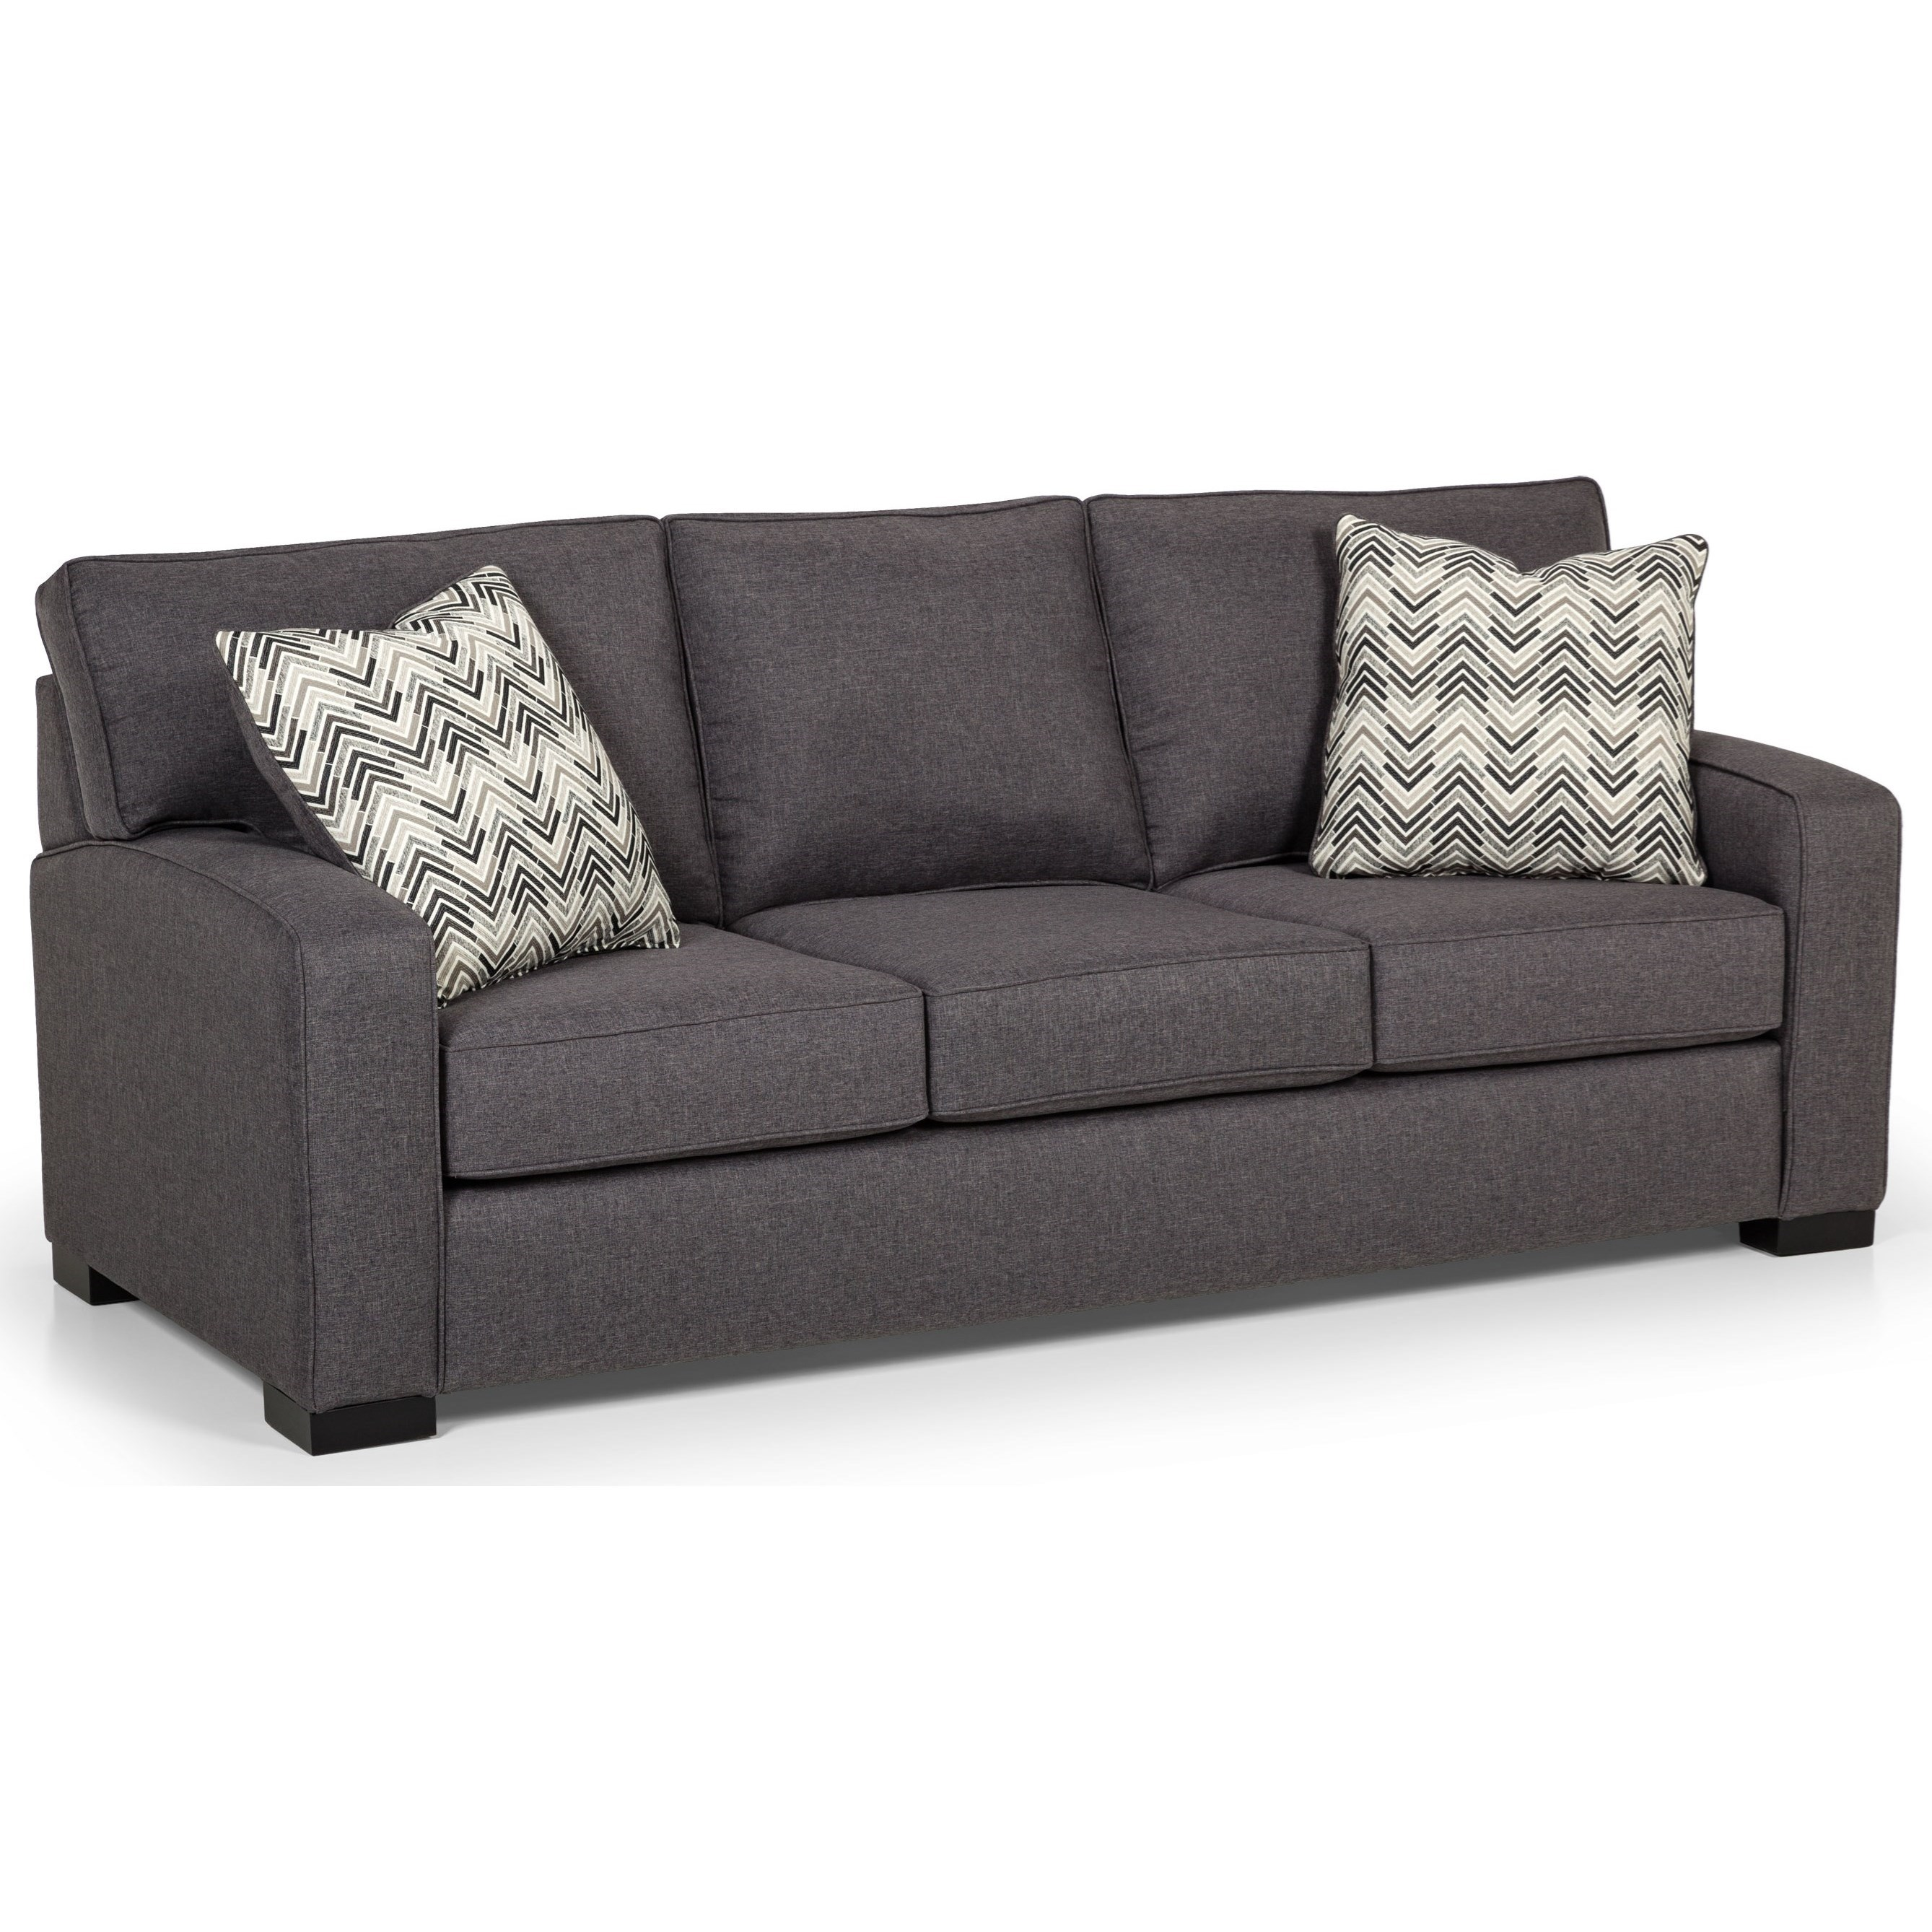 375 Sofa by Stanton at Wilson's Furniture